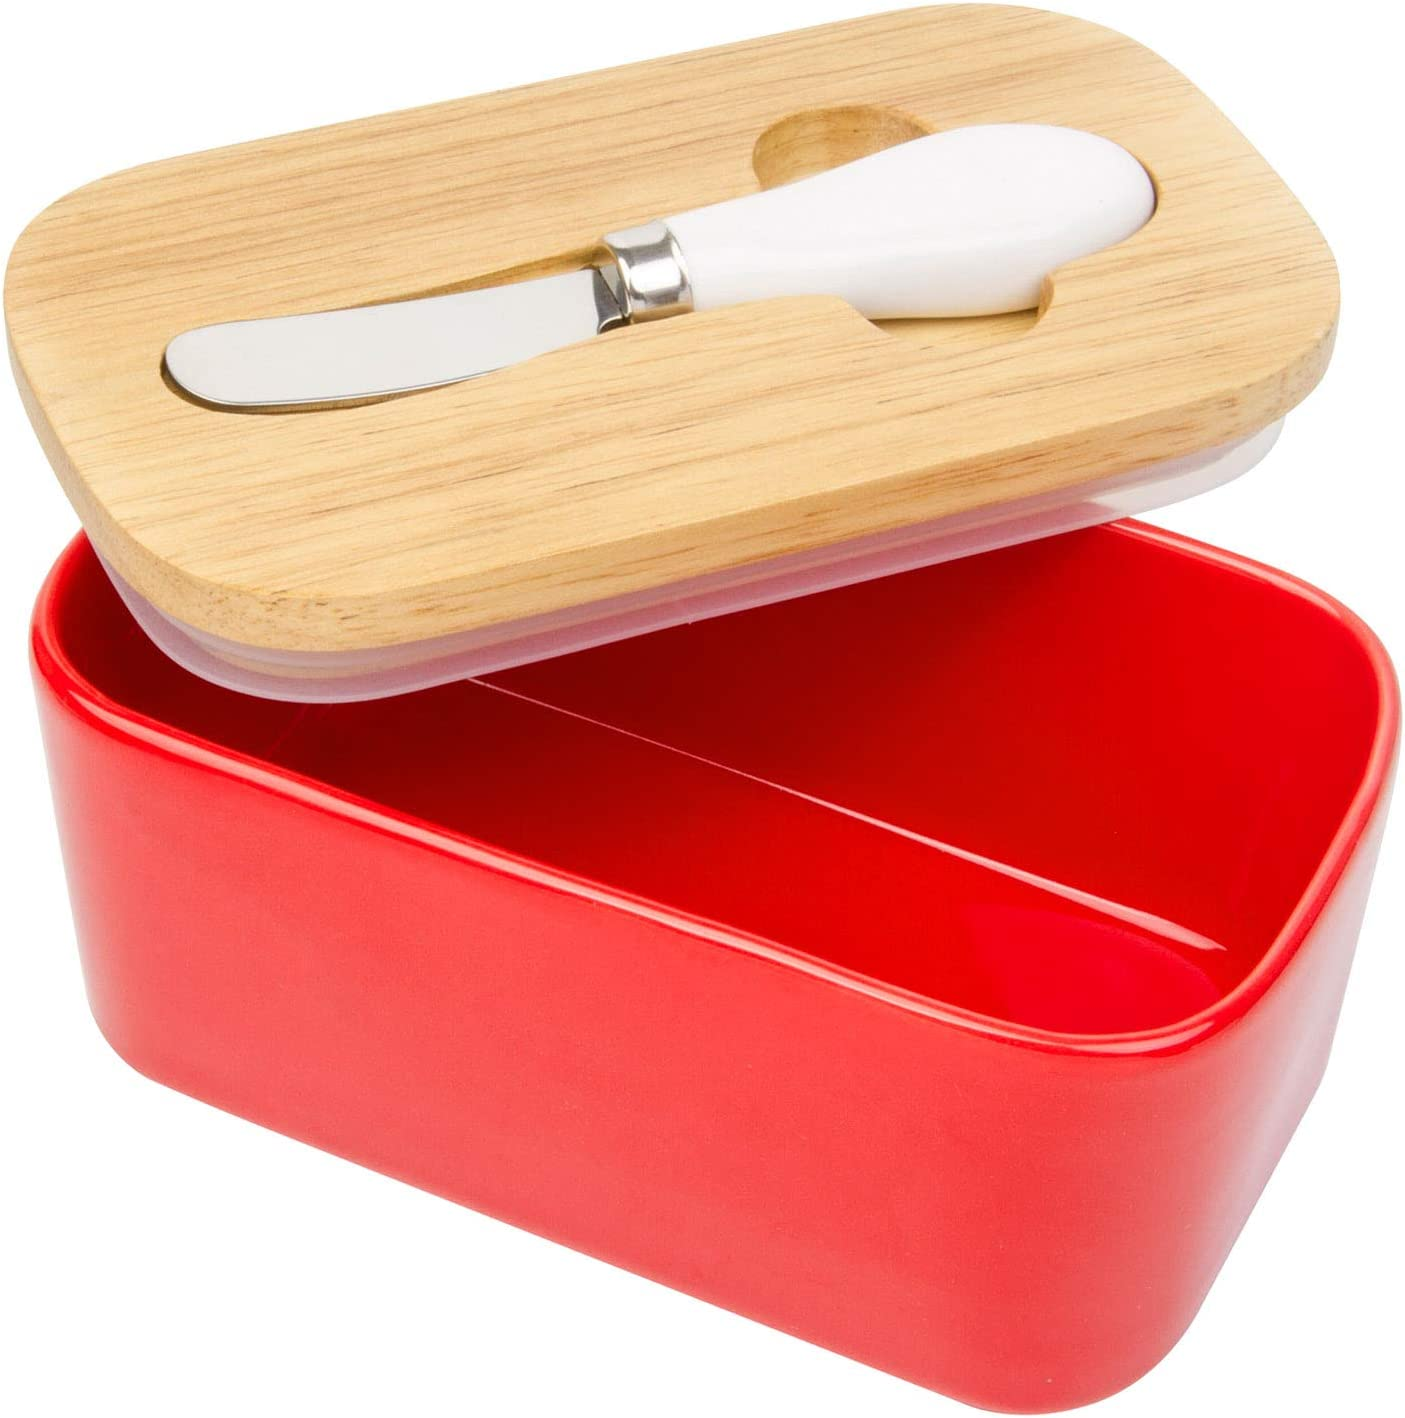 Arswin Butter Dish with Lid, LARGE 650ml Porcelain Keeper with Bamboo Cover & Stainless Steel Knife, Container Holds 2 Butter Sticks for Countertop Refrigerator, Easy Clean Butter Storage Dish (Red)